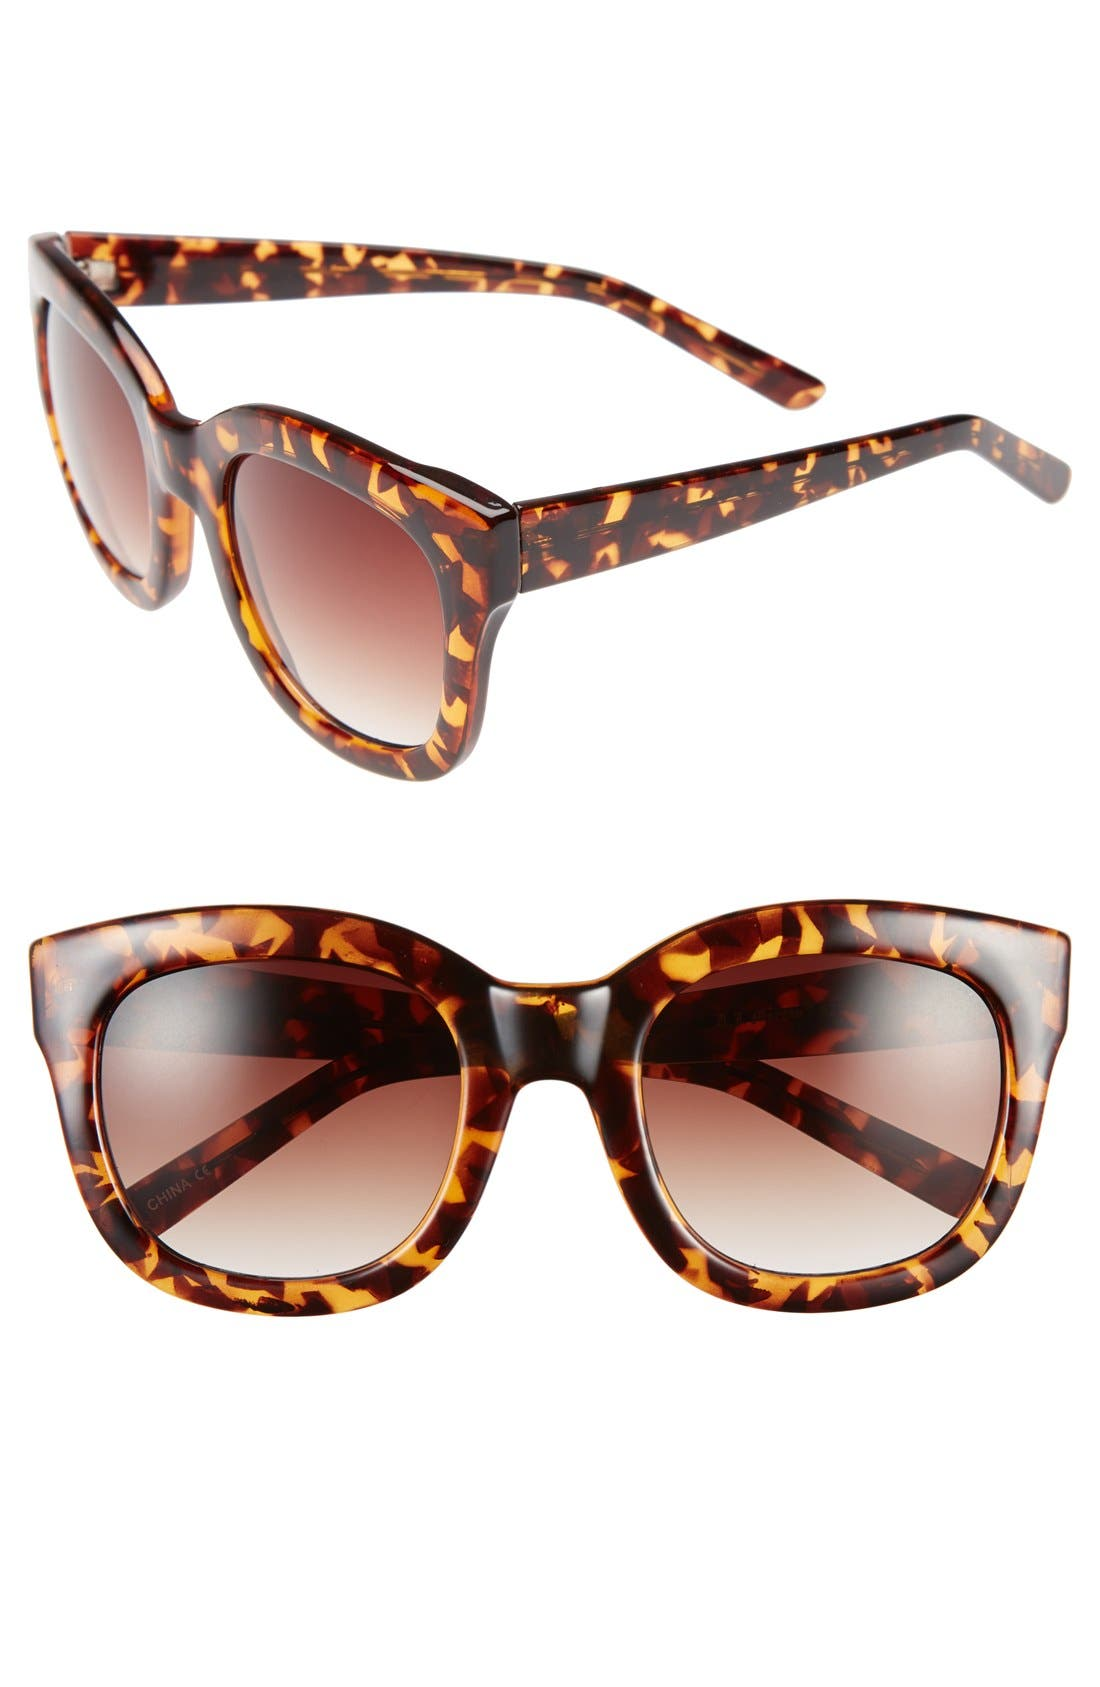 'Feline' 54mm Oversized Cat Eye Sunglasses,                         Main,                         color, Tortoise